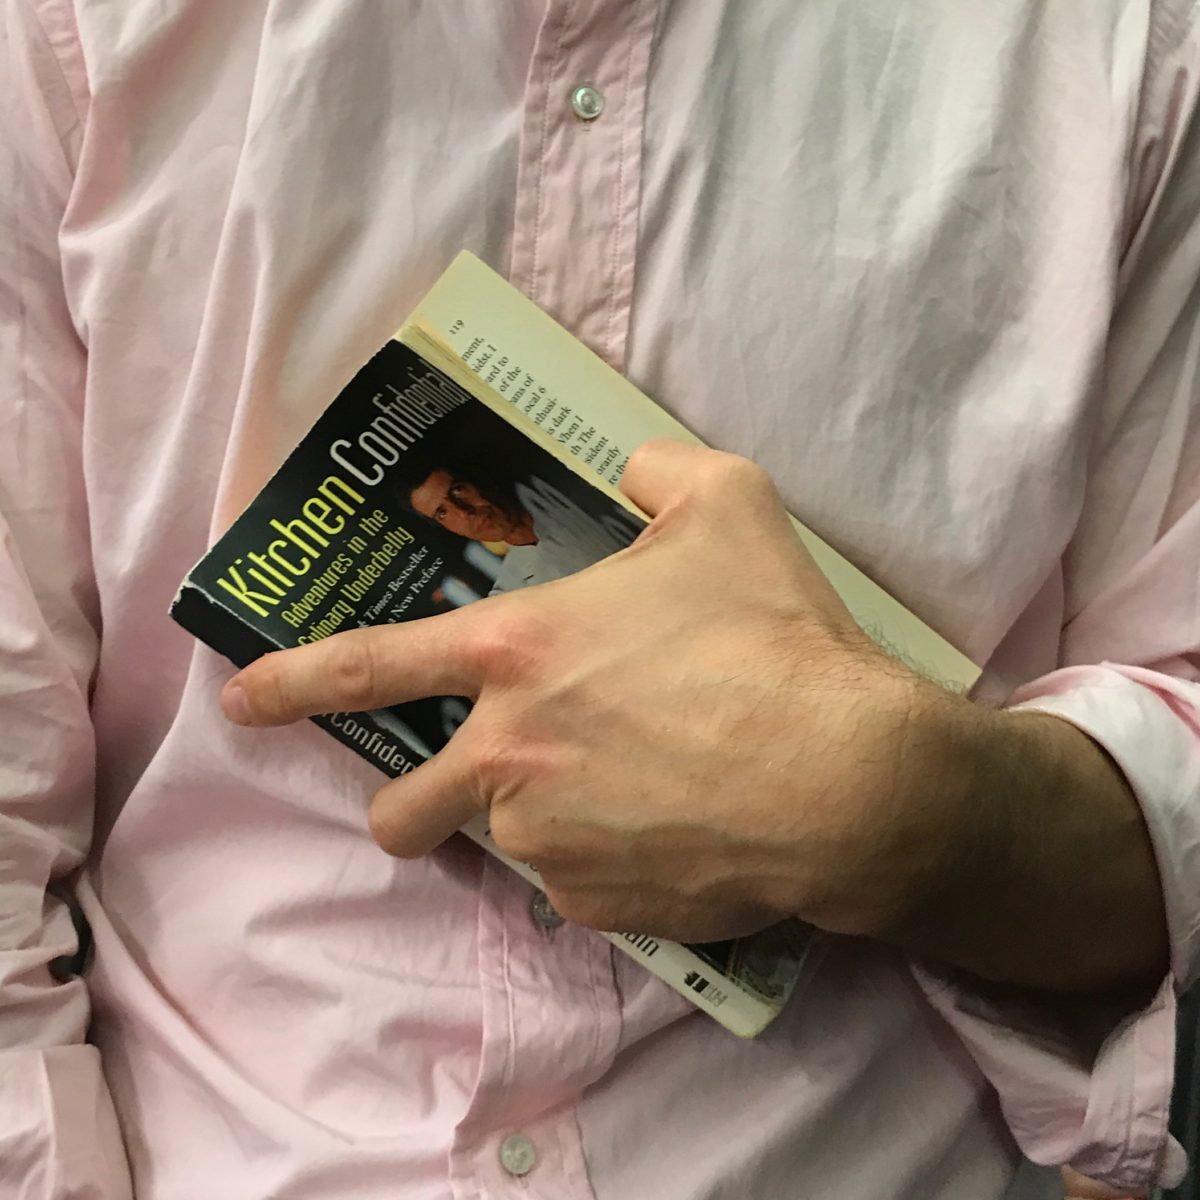 a person's hand holding a book against their chest